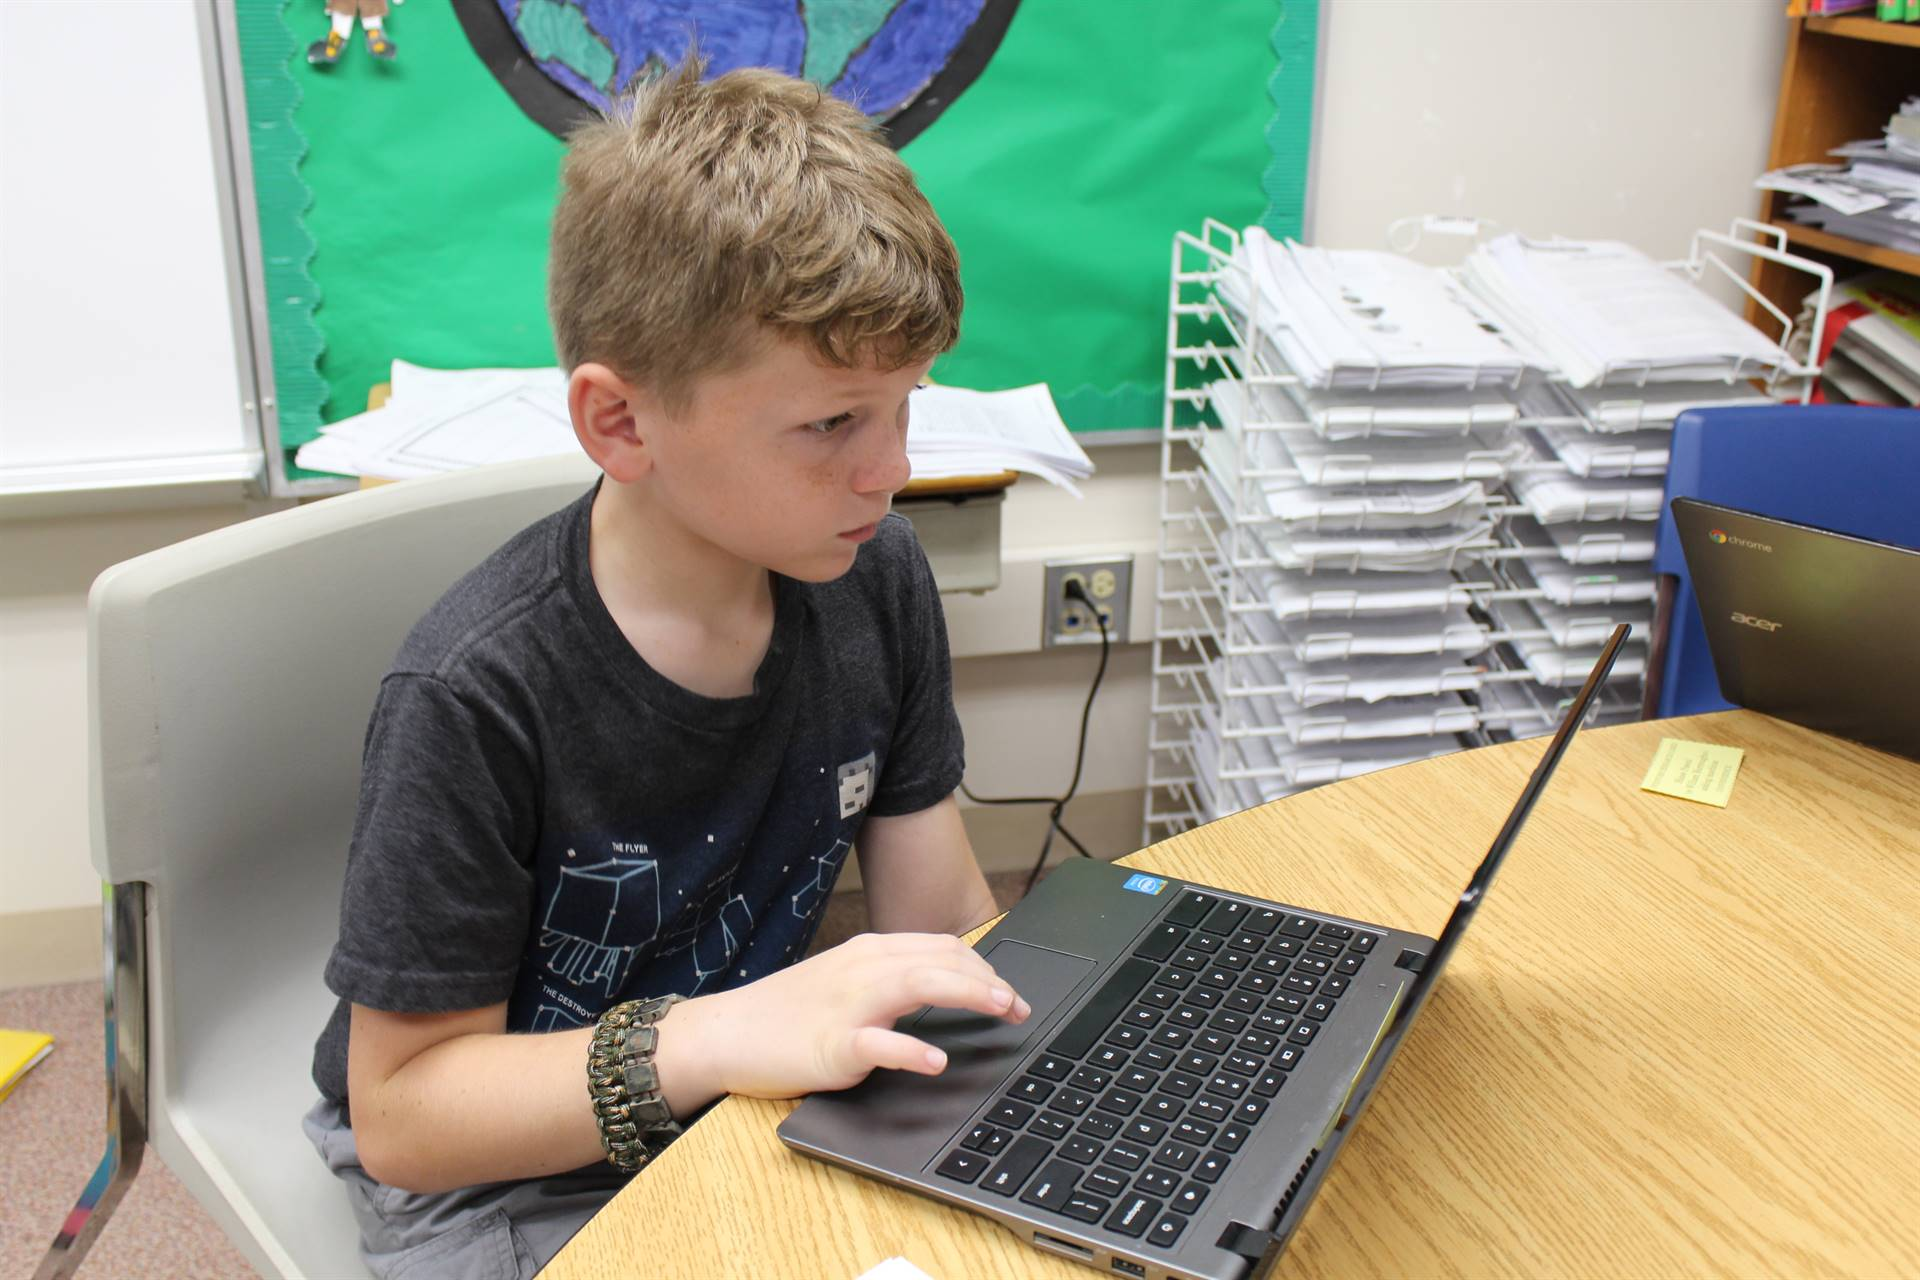 Gifted students researching inventions